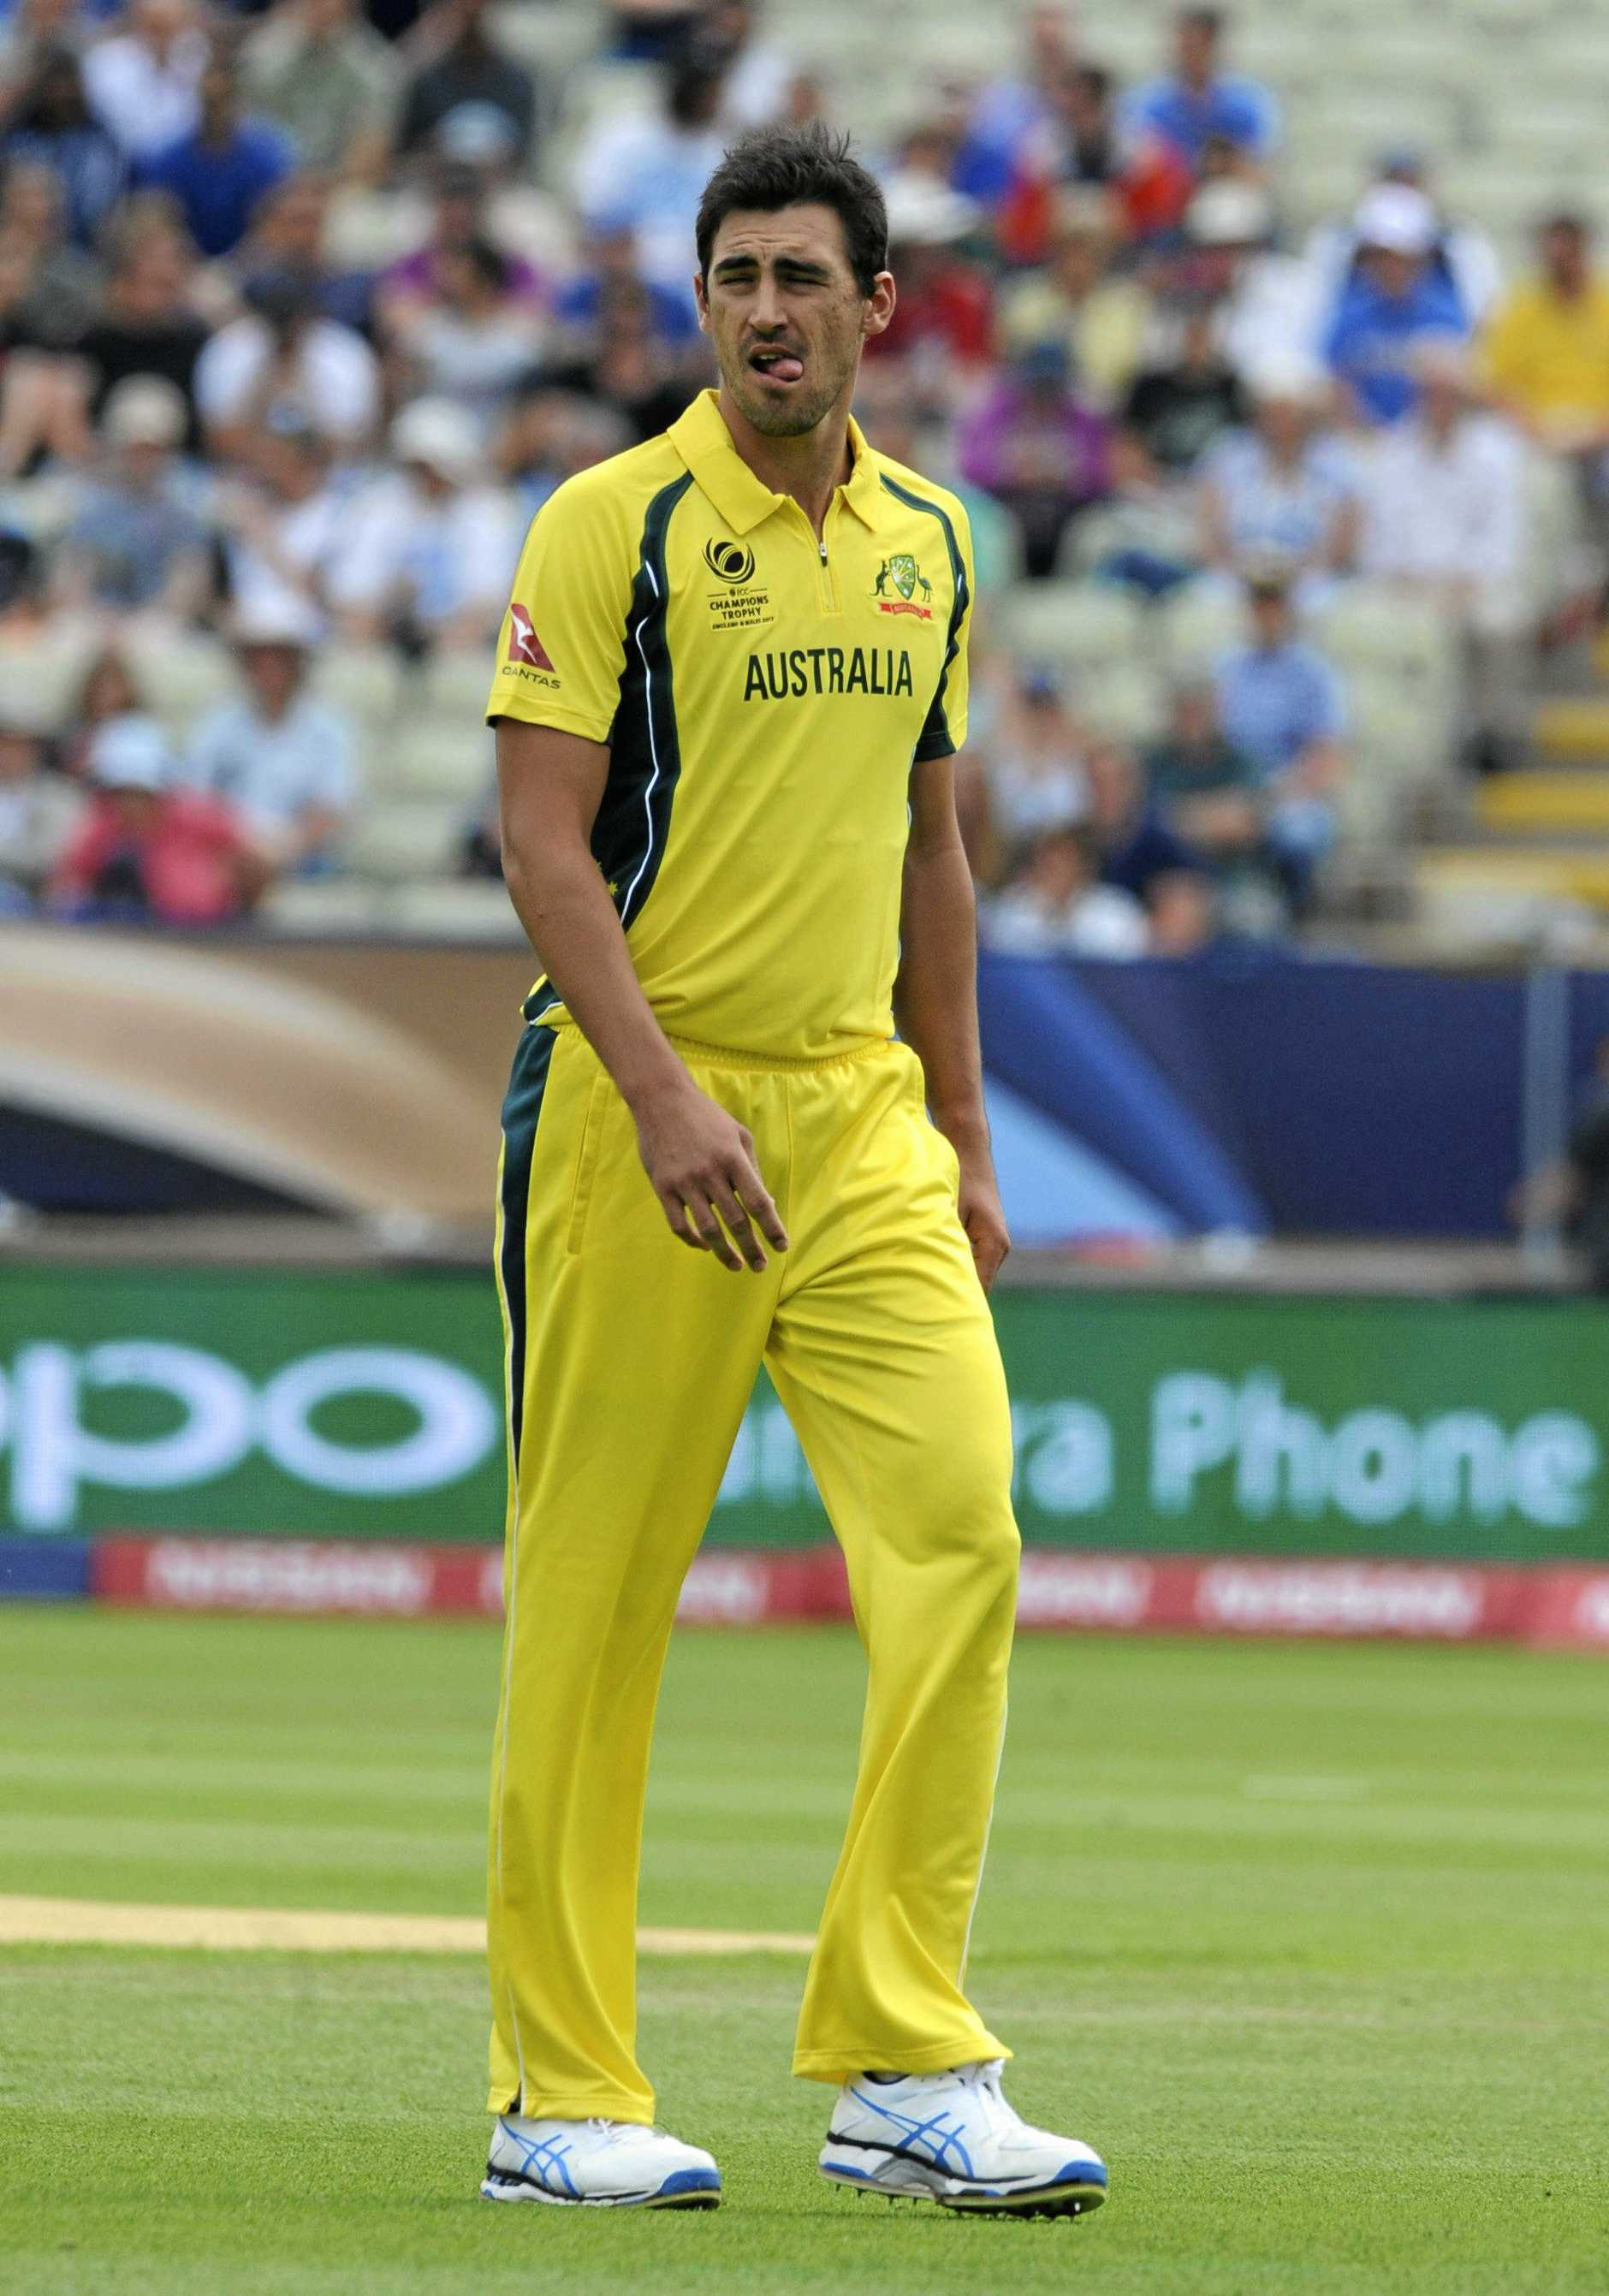 Australia's Mitchell Starc during the ICC Champions Trophy.